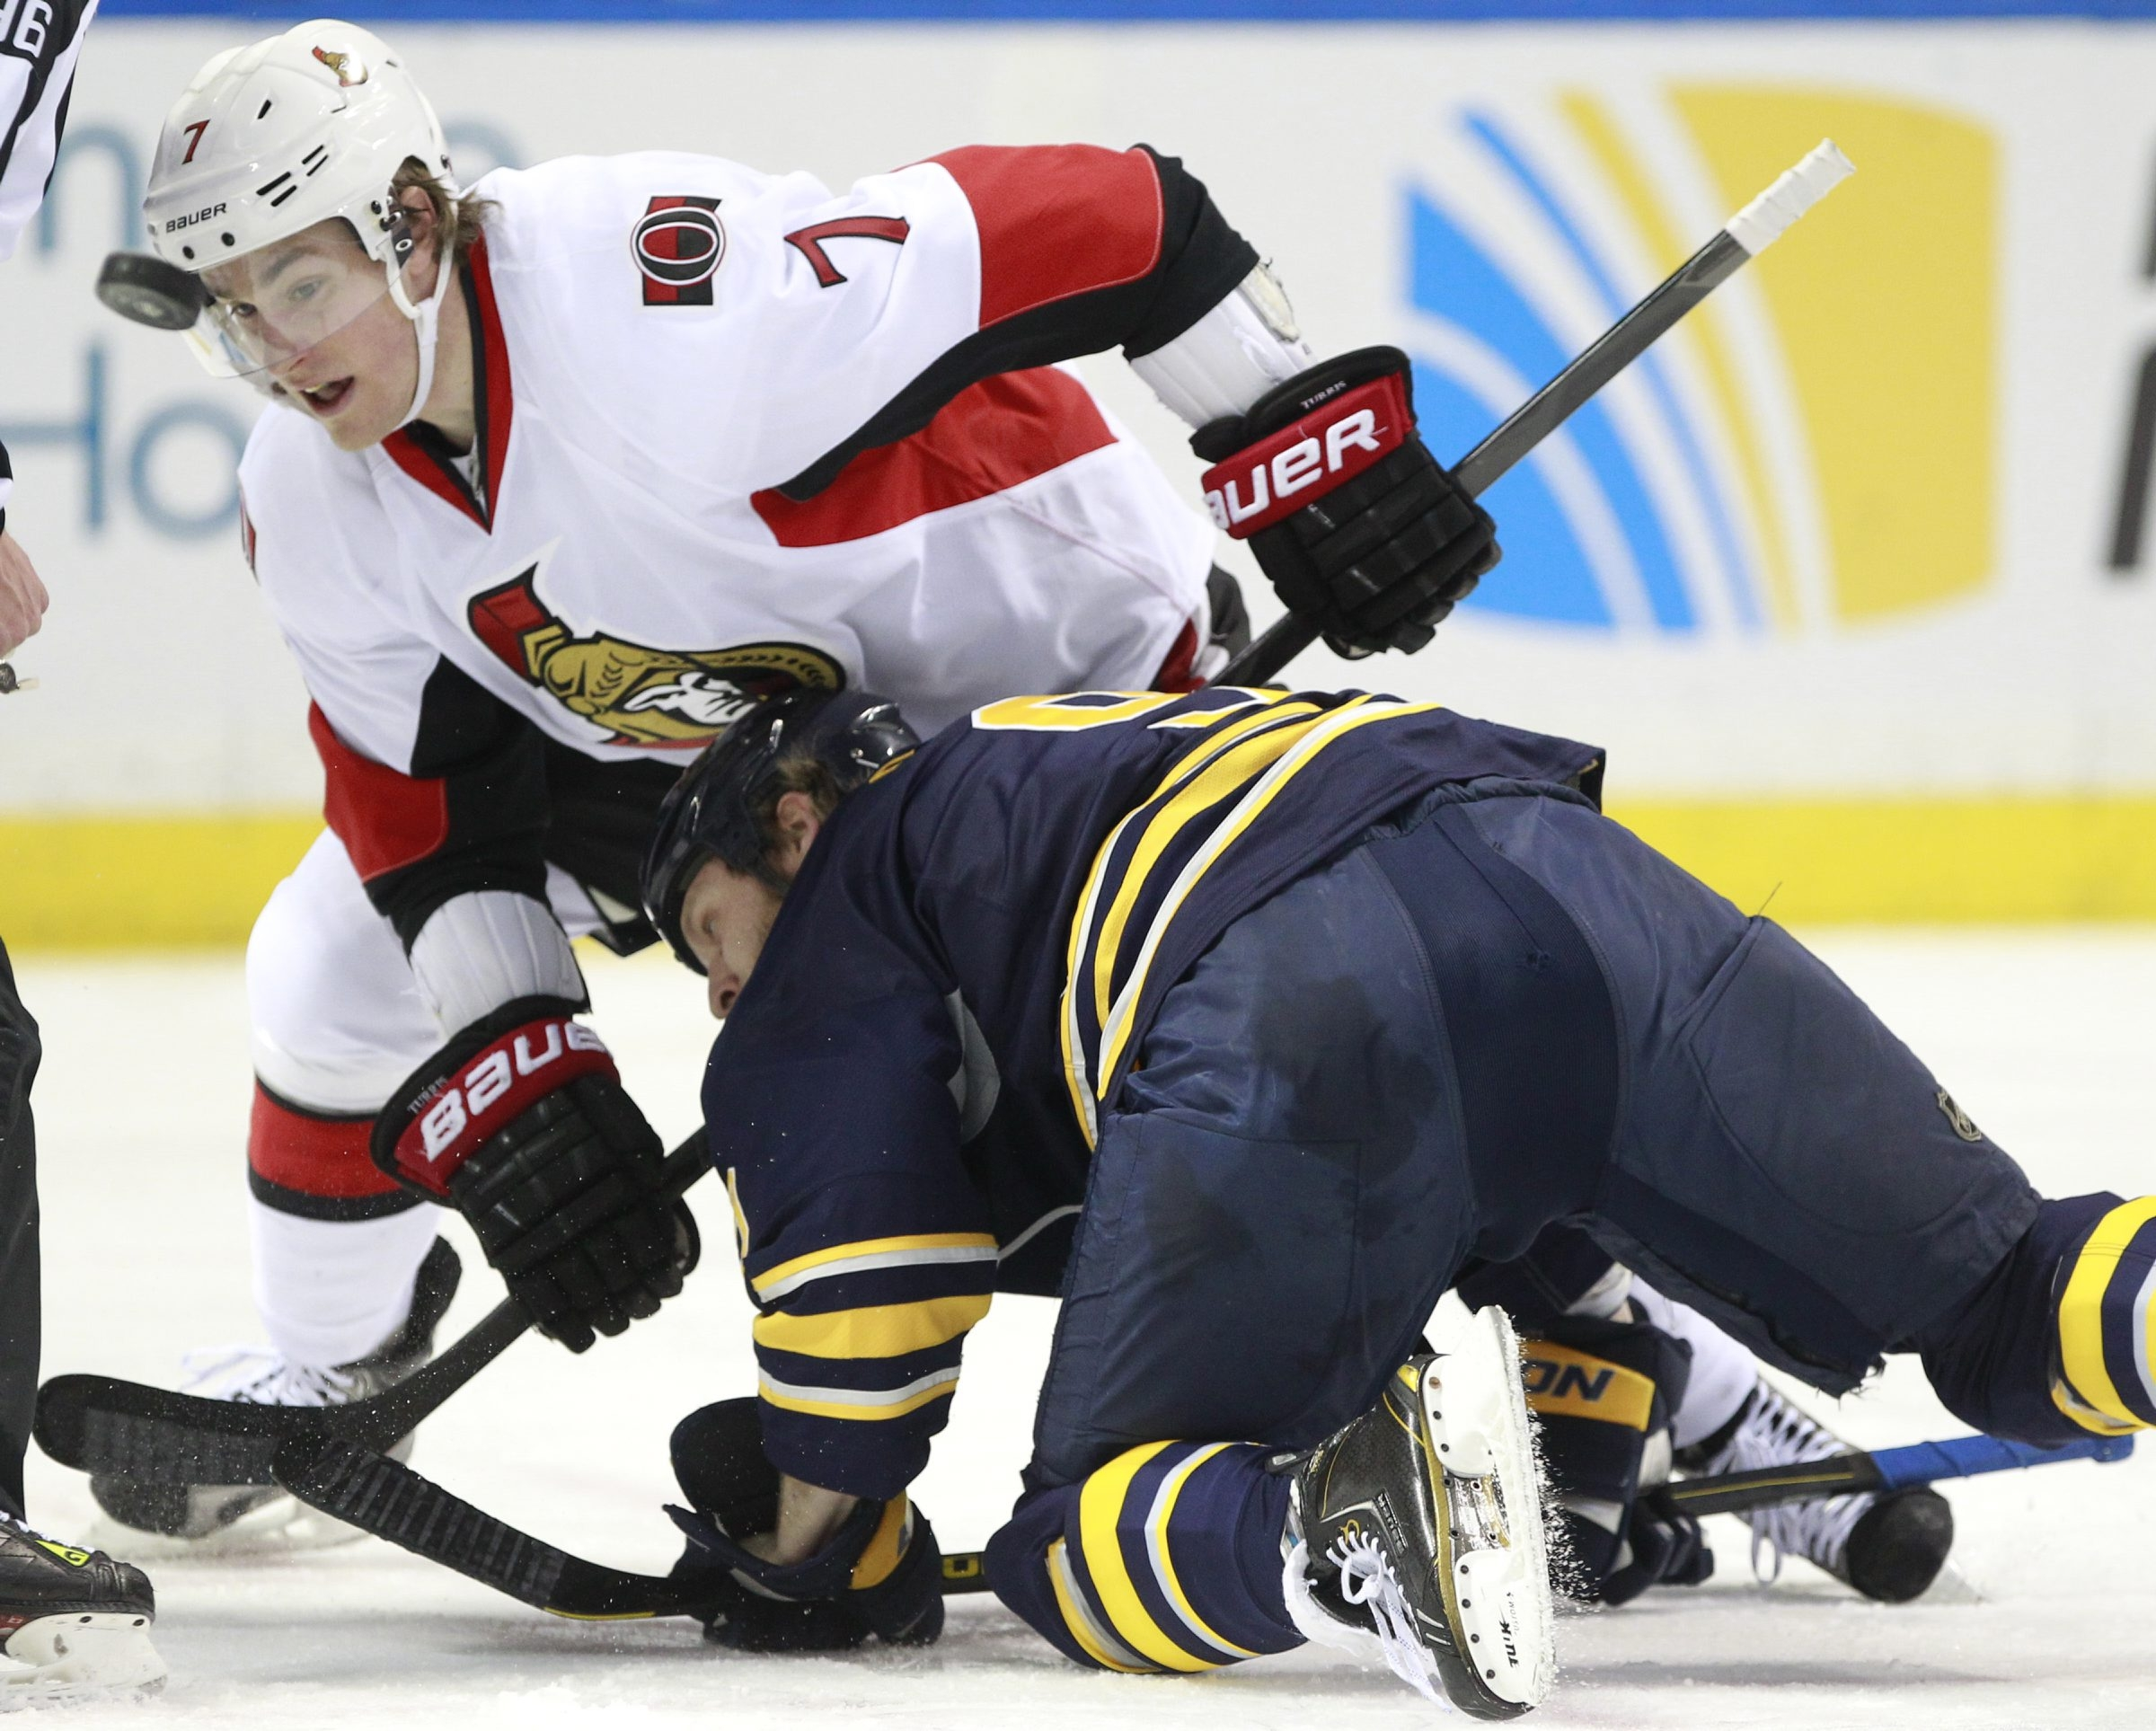 Buffalo's Steve Ott tangles with Ottawa's Kyle Turris (7) during a faceoff at the First Niagara Center.